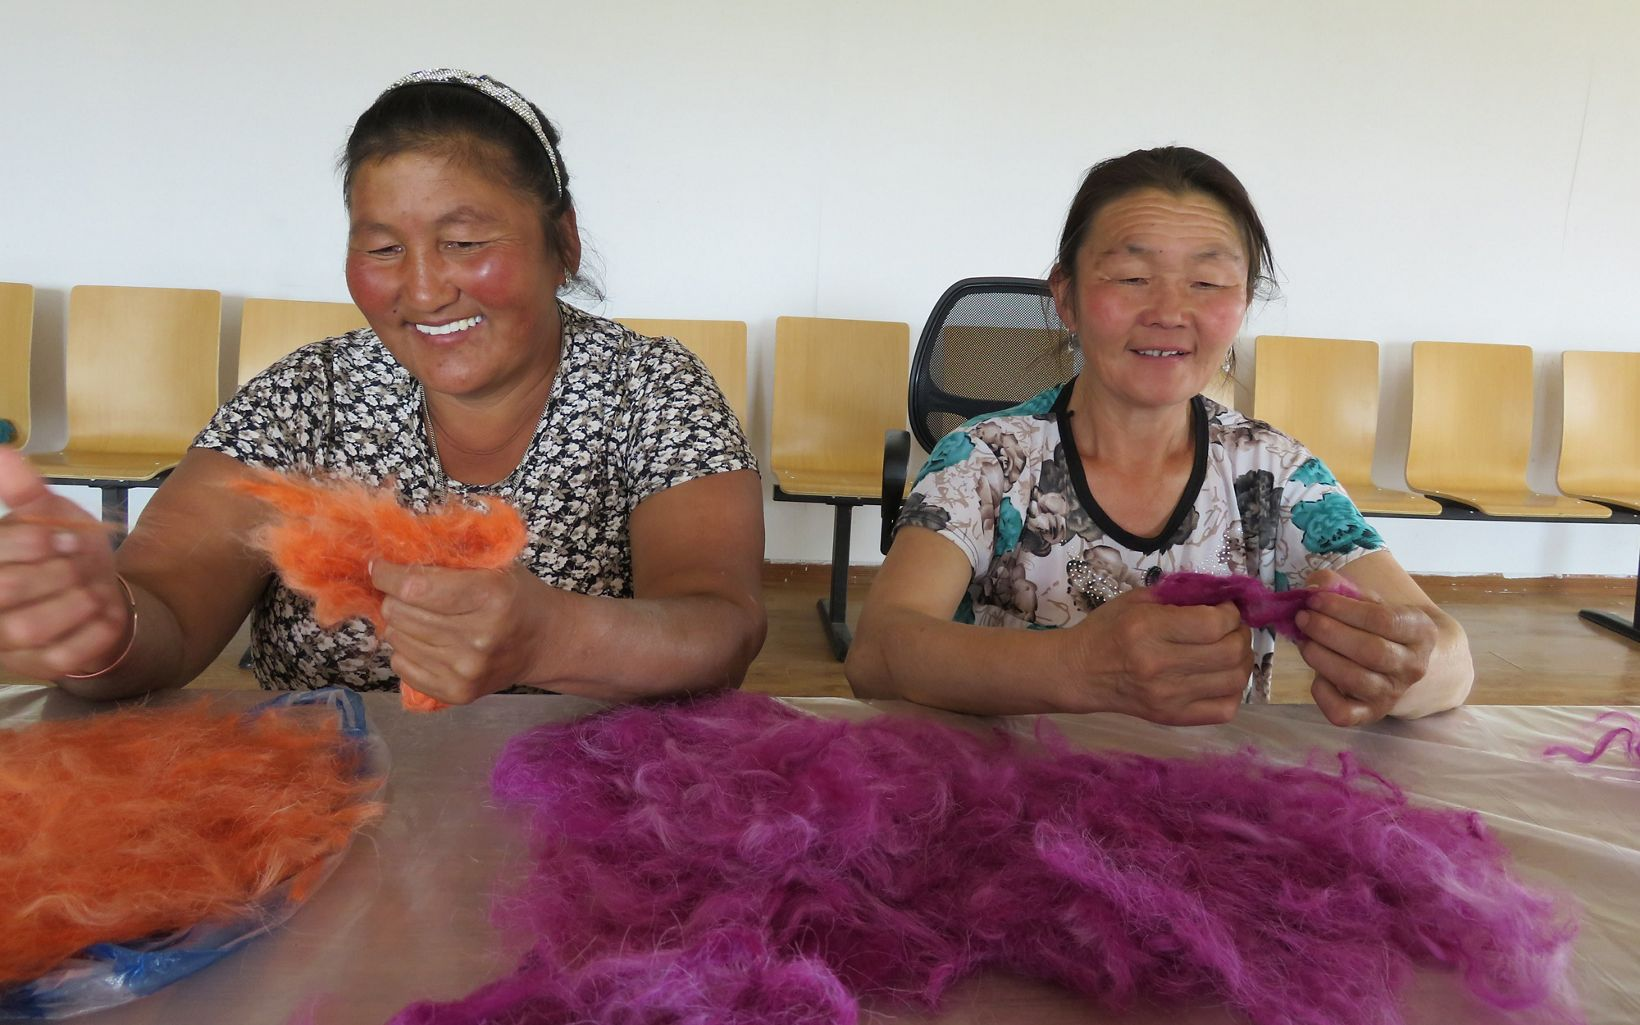 Two herder women smile while working on separating colored wool.